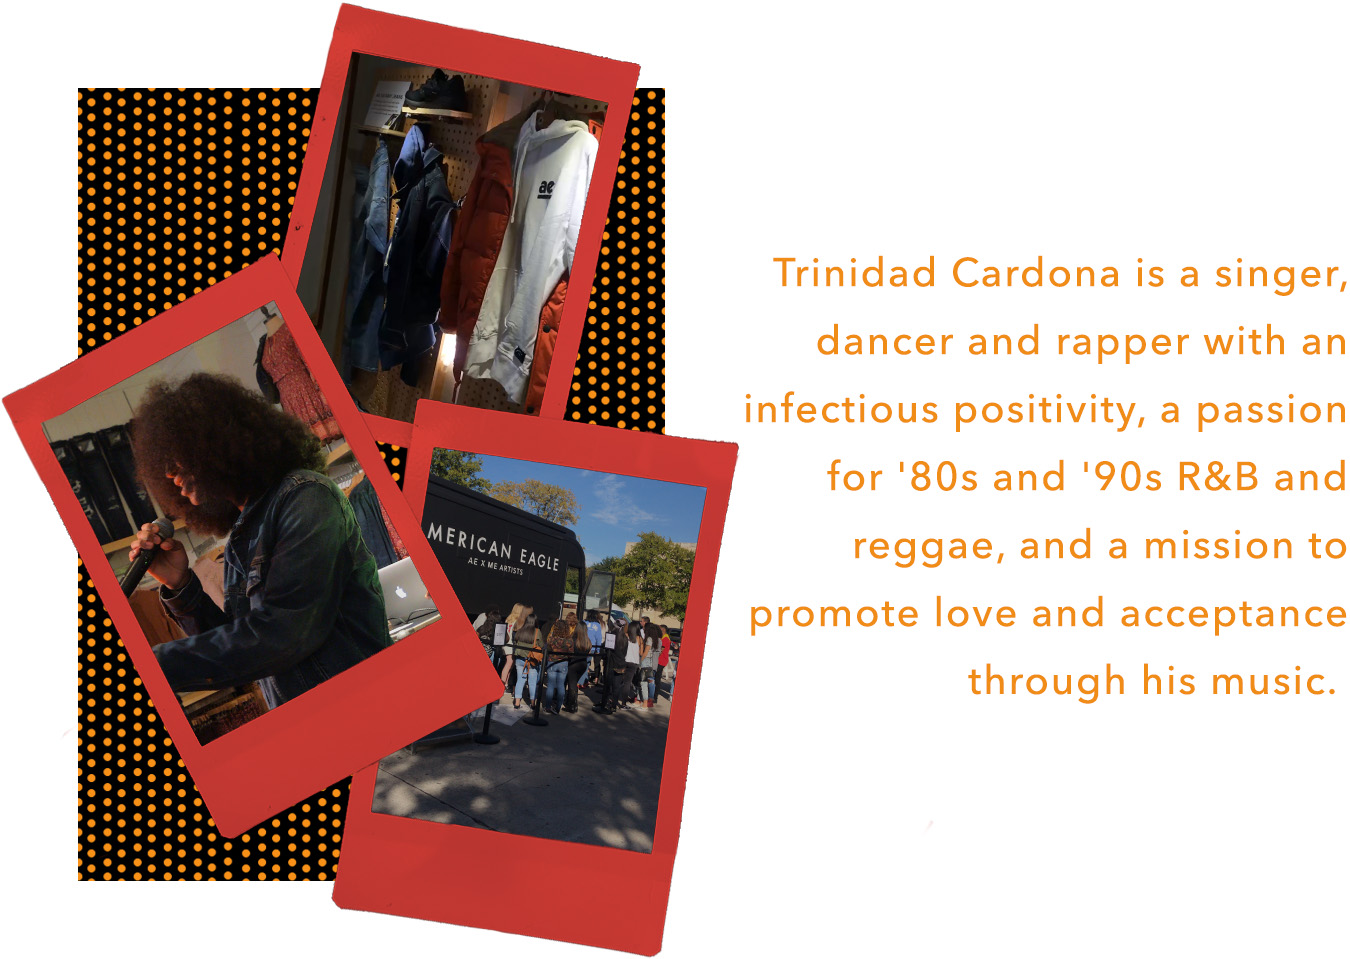 Trinidad Cardona is a singer, dancer and rapper with an infectious positivity, a passion for '80s and '90s R&B and reggae, and a mission to promote love and acceptance through his music.